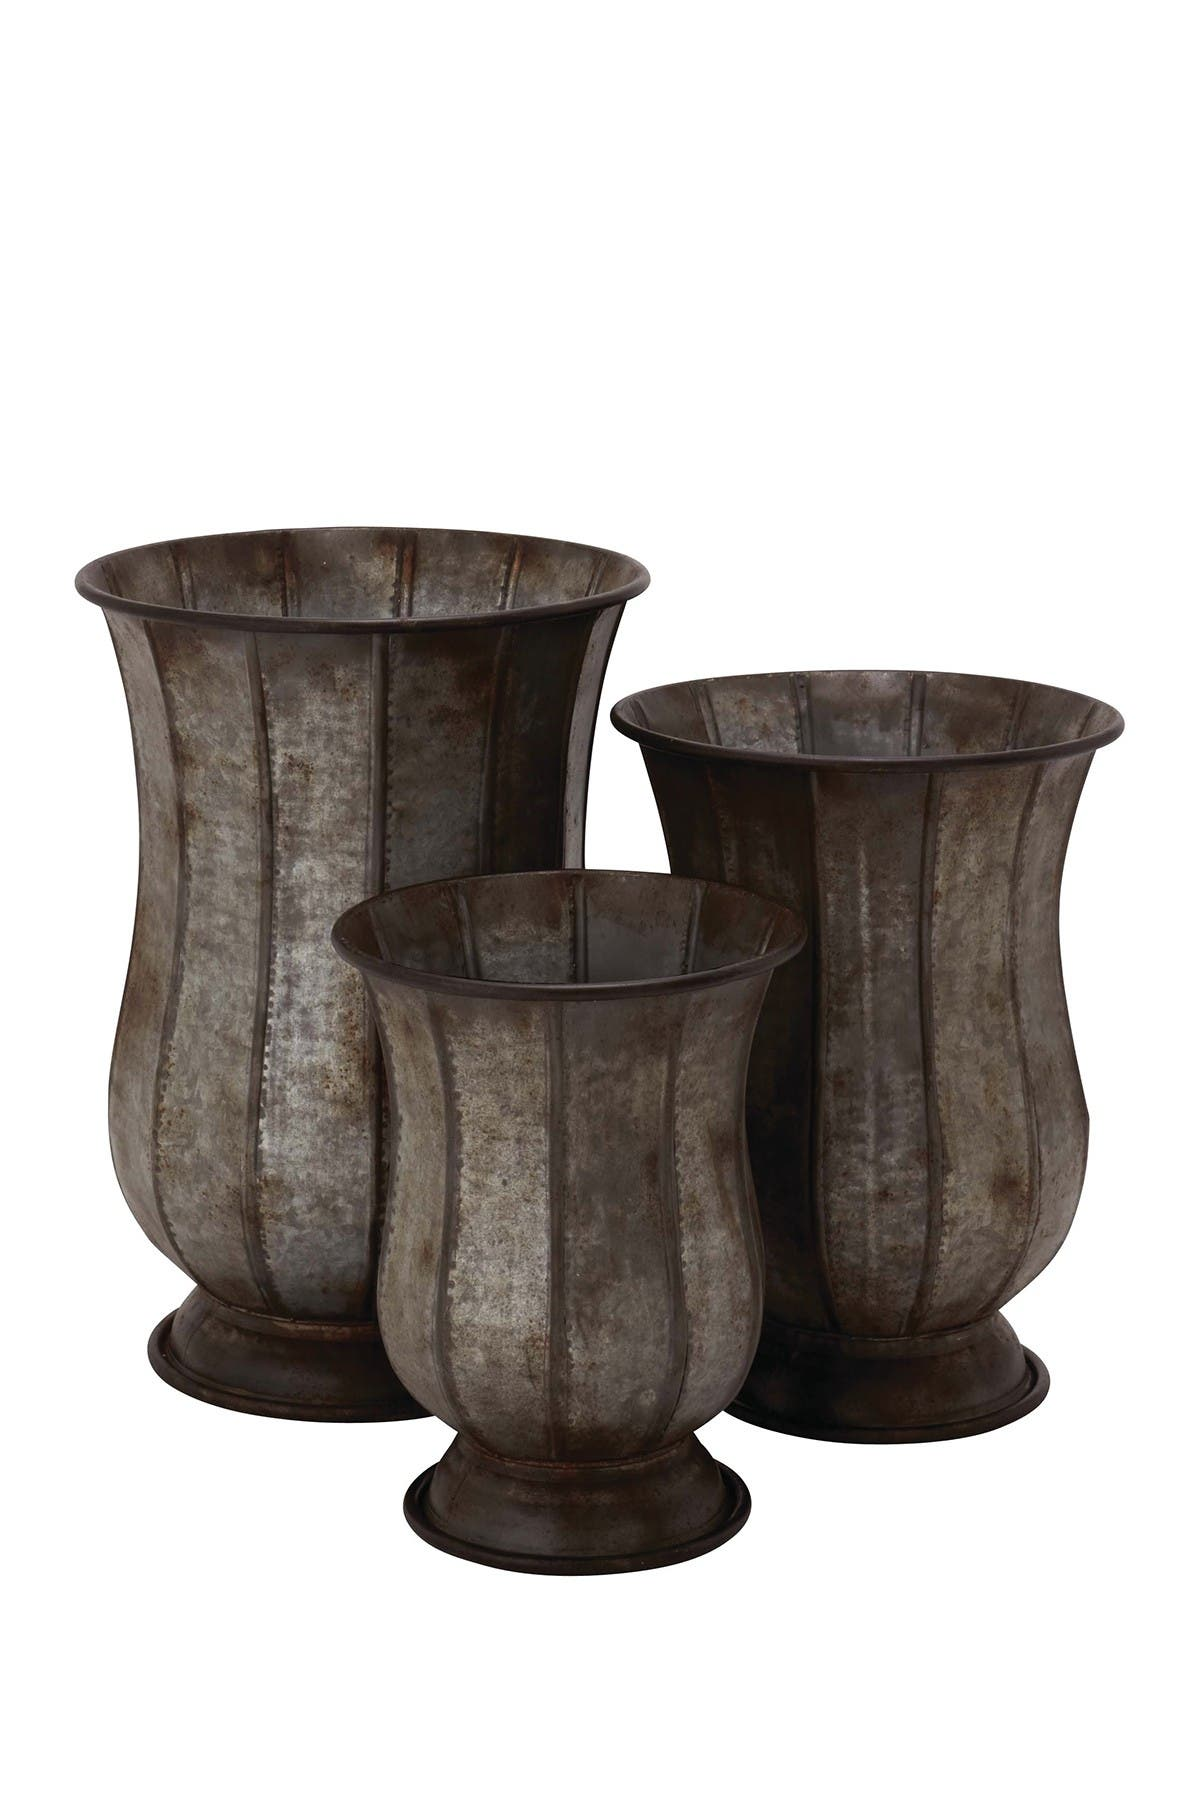 Image of Willow Row Grey Farmhouse Distressed Iron Pedestal Planter - Set of 3